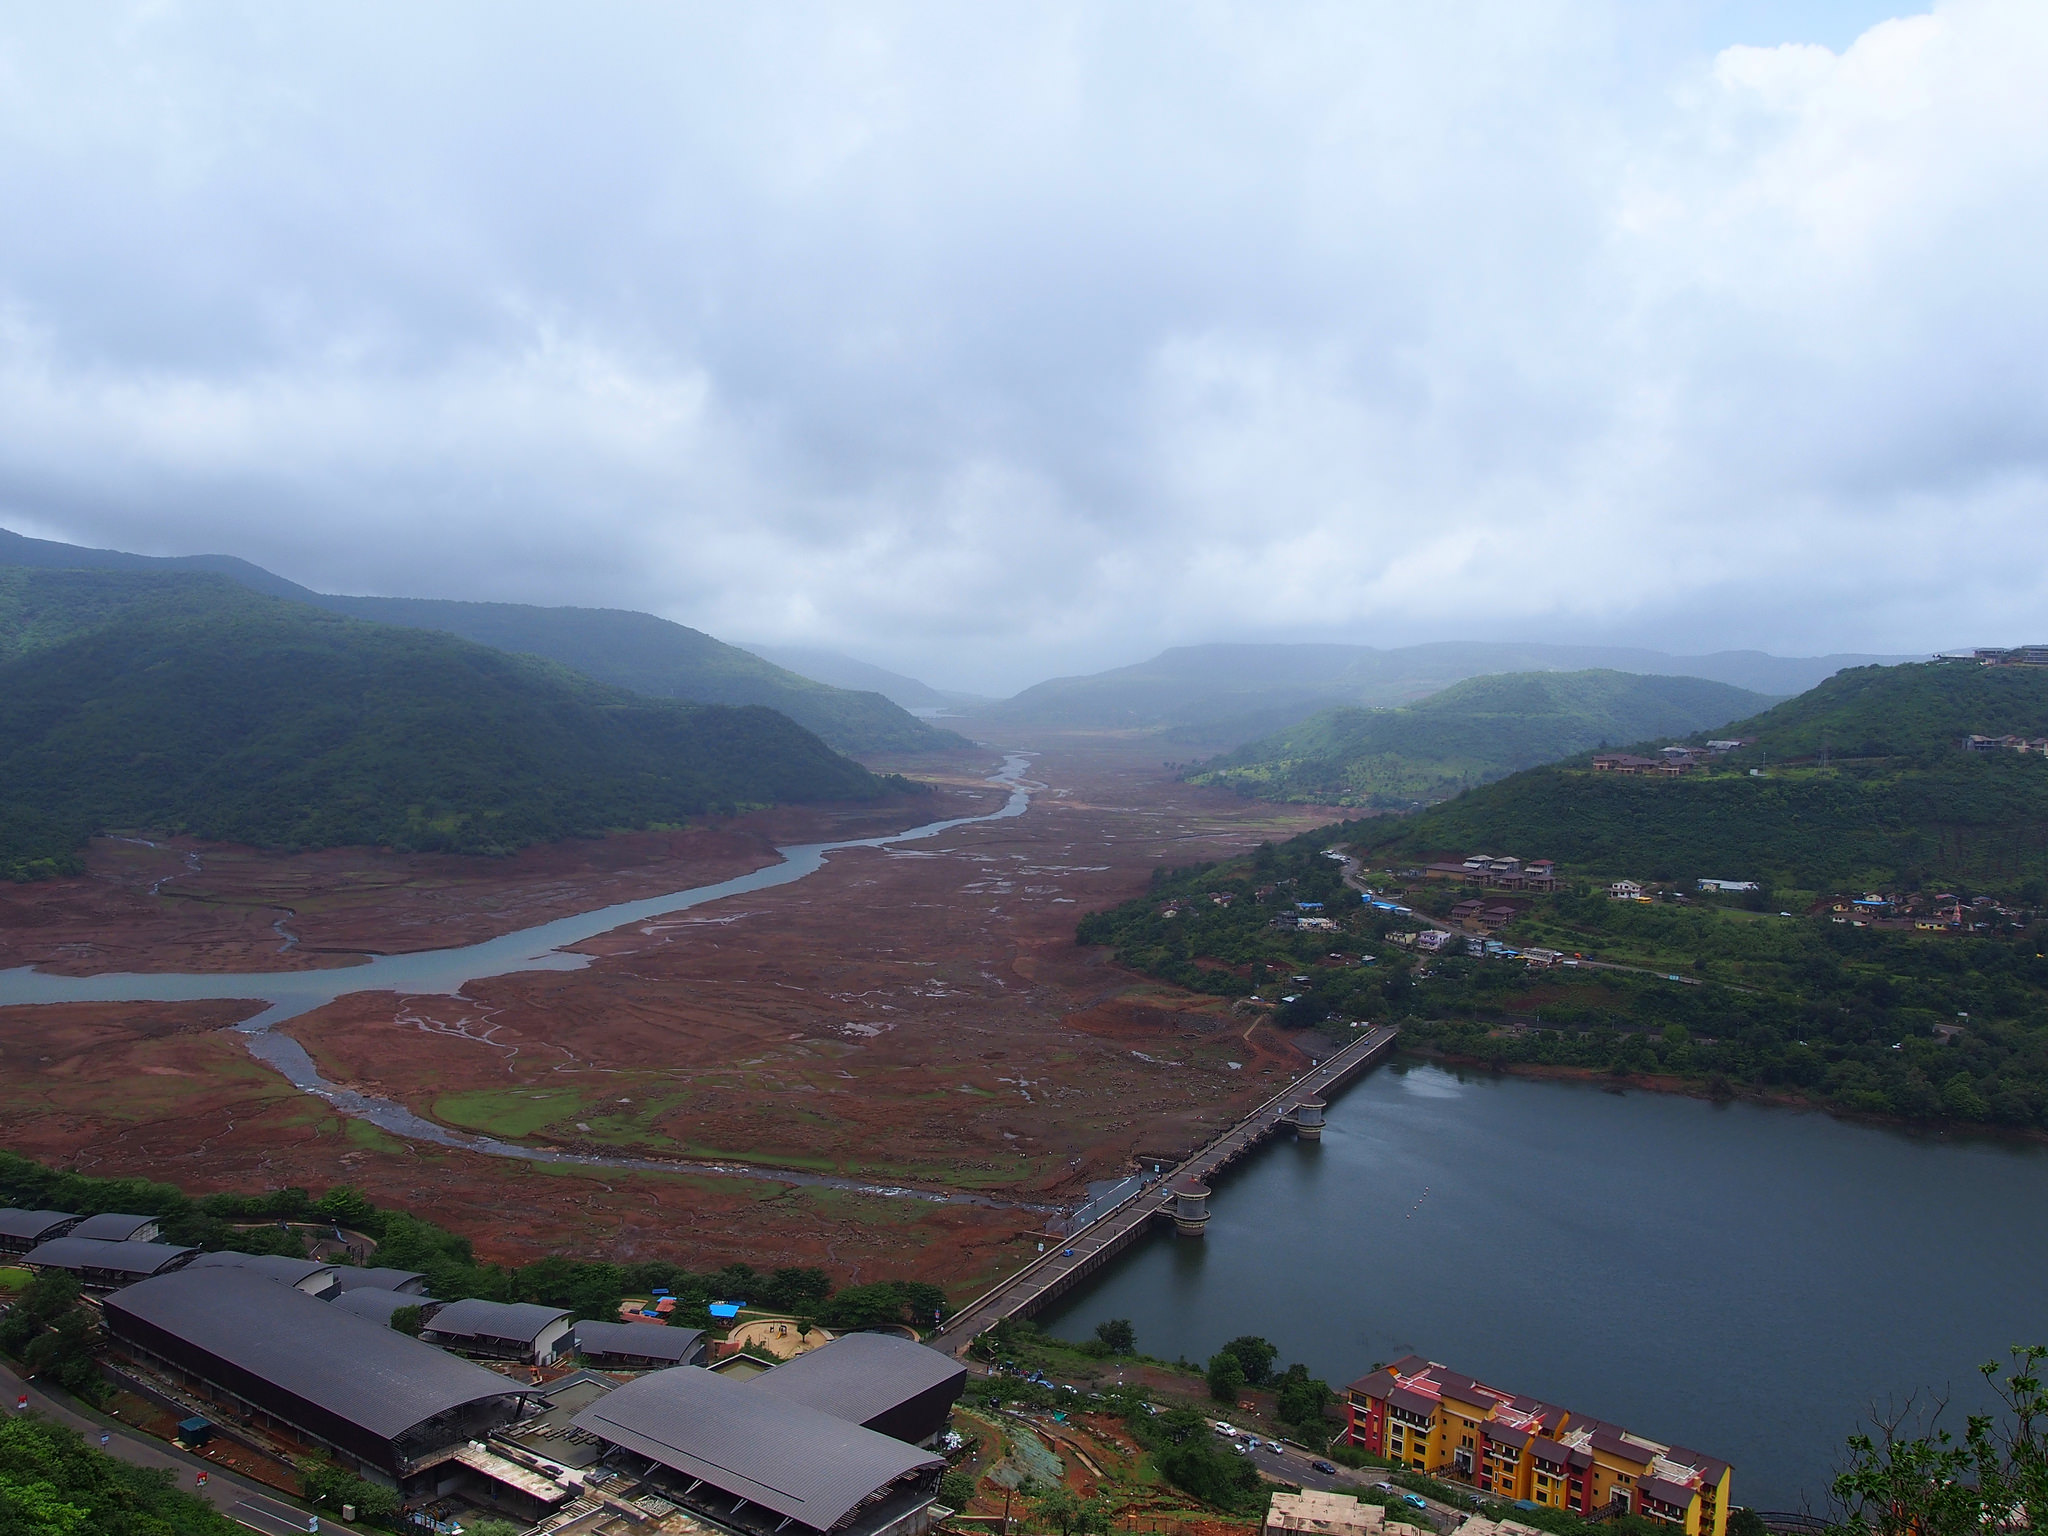 Image of Lavasa, India by  Rahul Chhiber